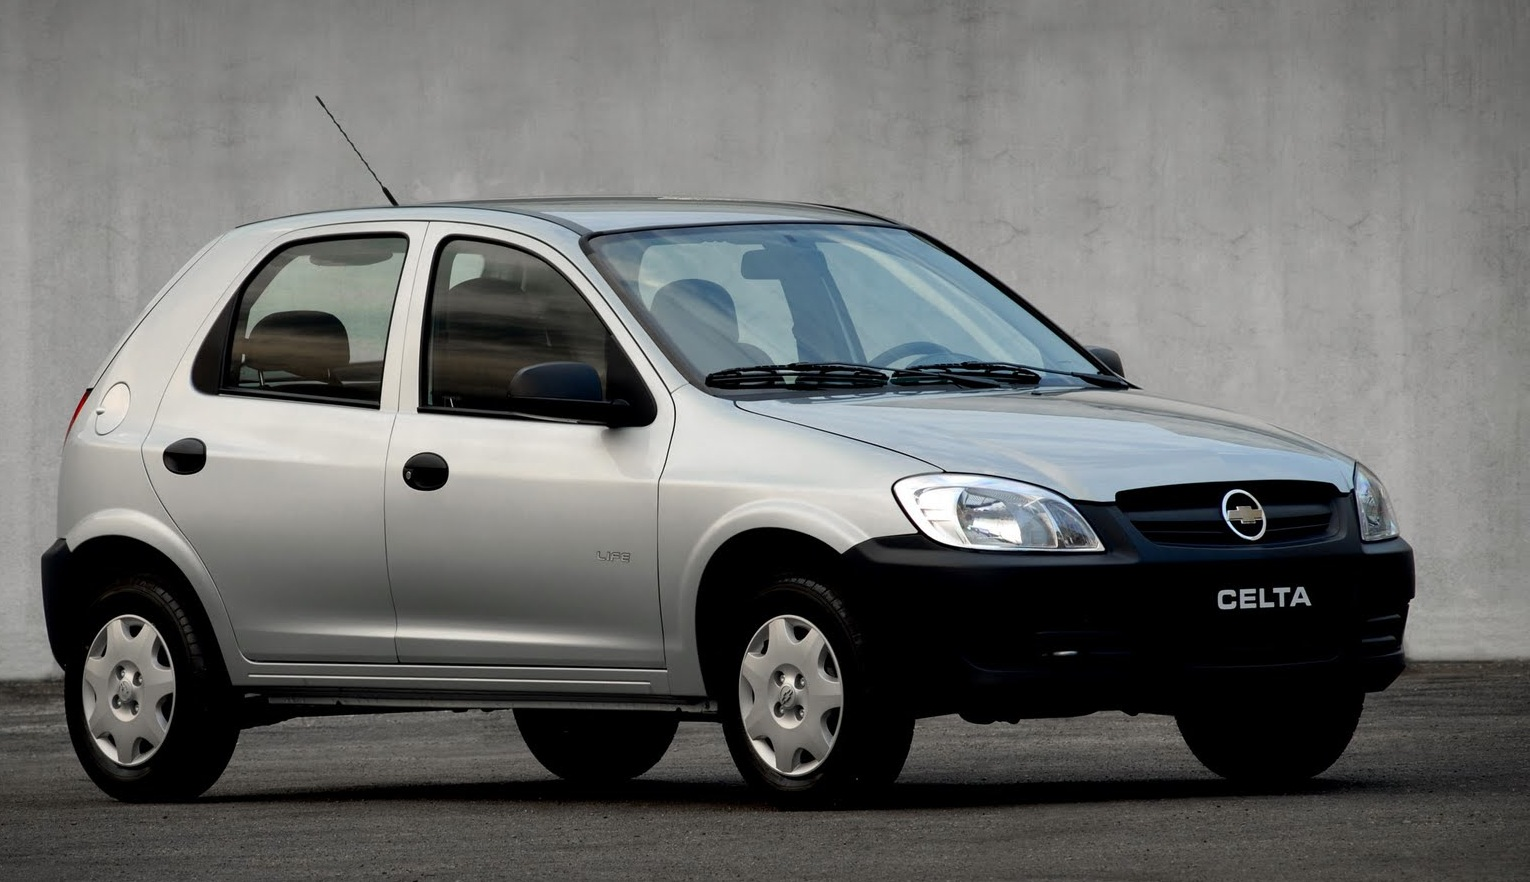 2005 Chevrolet Celta   pictures, information and specs - Auto